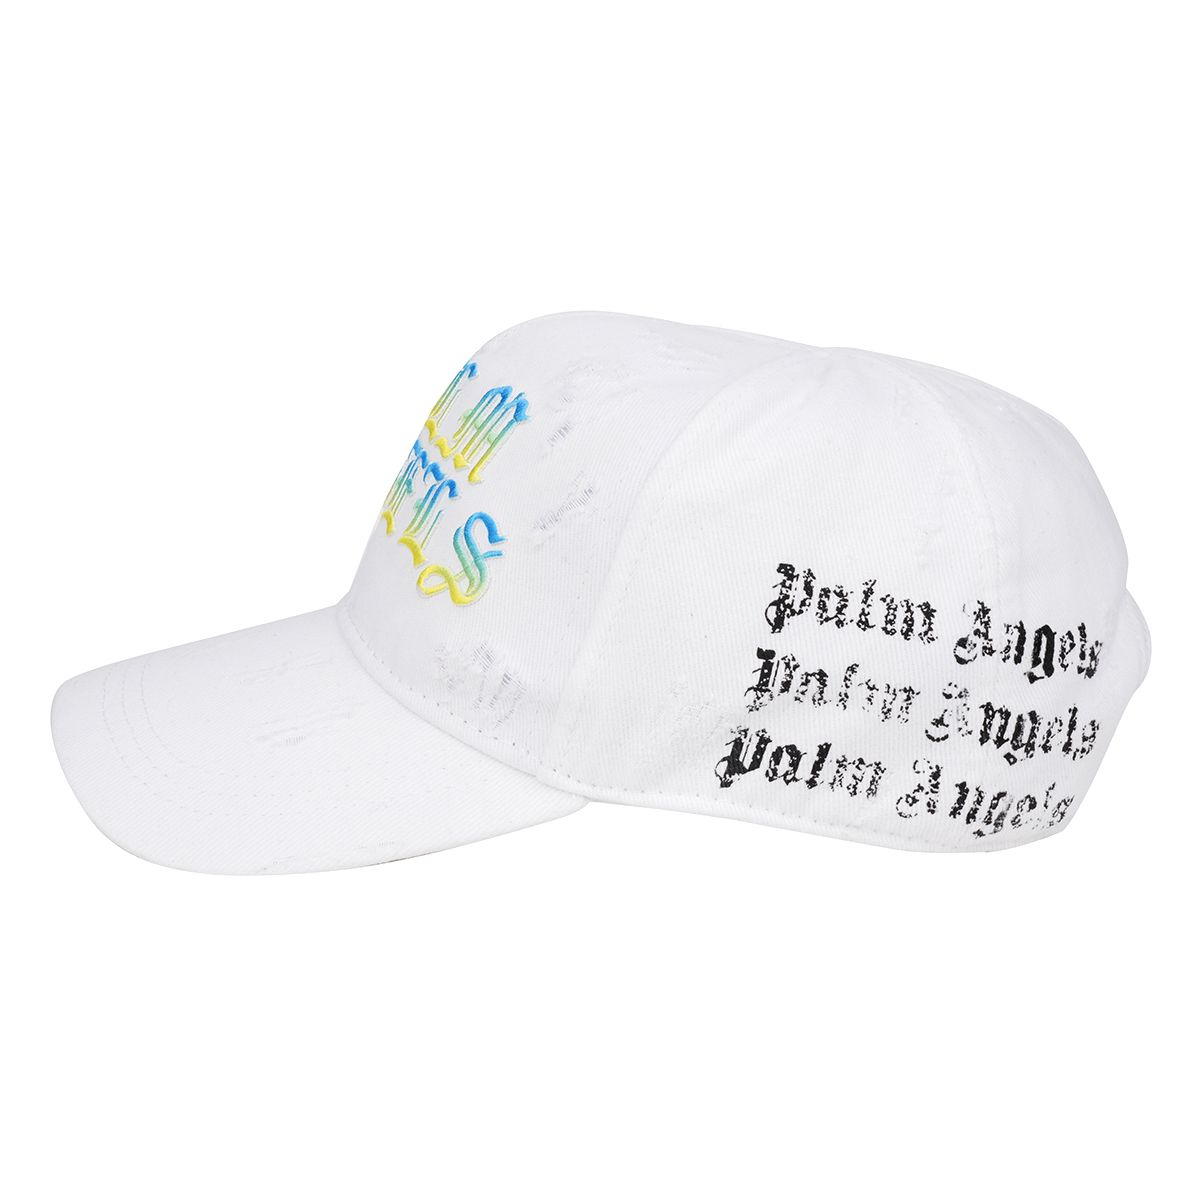 Palm Angels HUE GOTHIC LOGO CAP / 0184 : WHITE MULTICOLOR